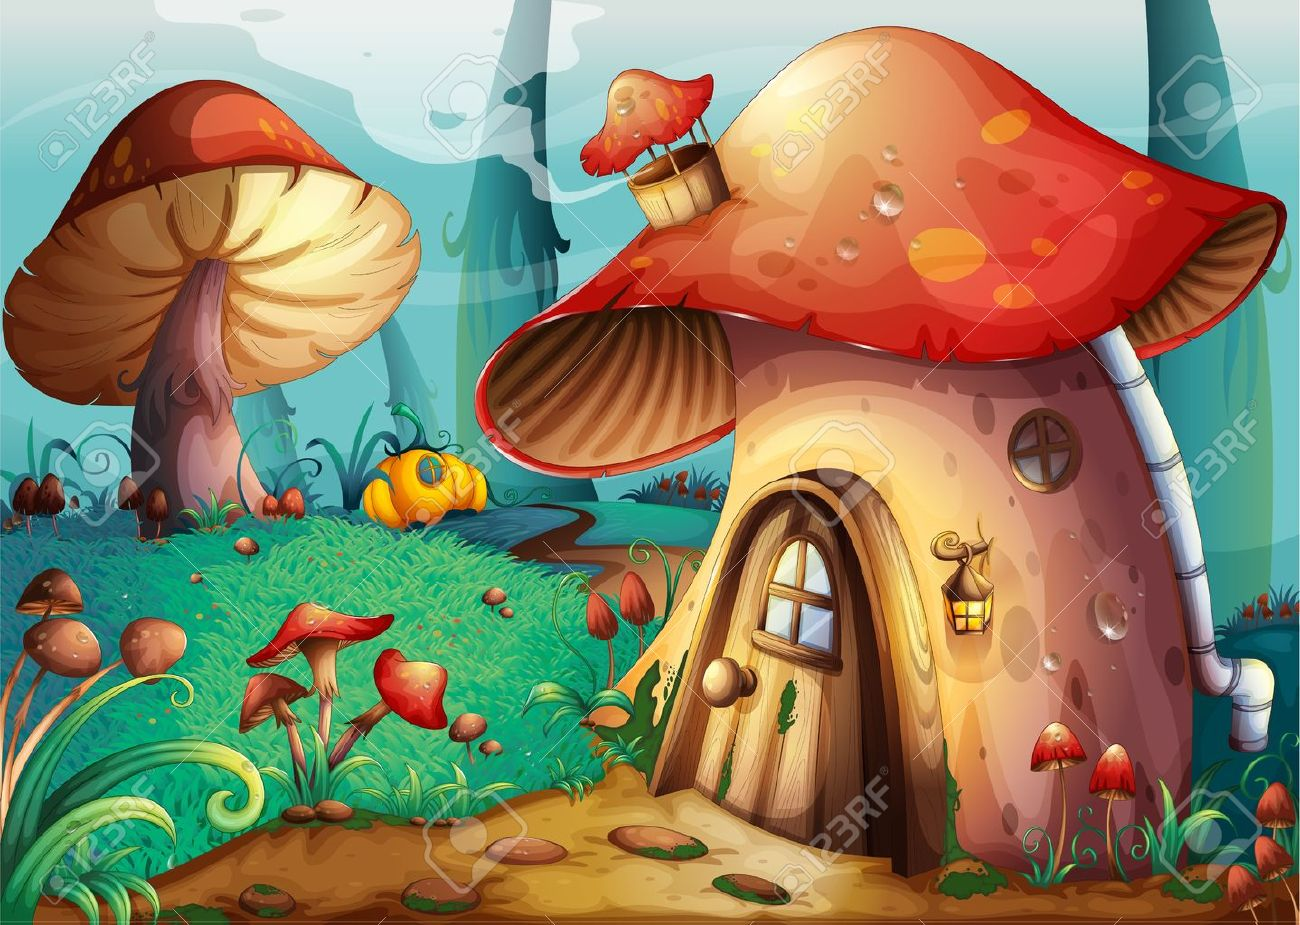 illustration of red mushroom house on a blue background Stock Vector - 14411830